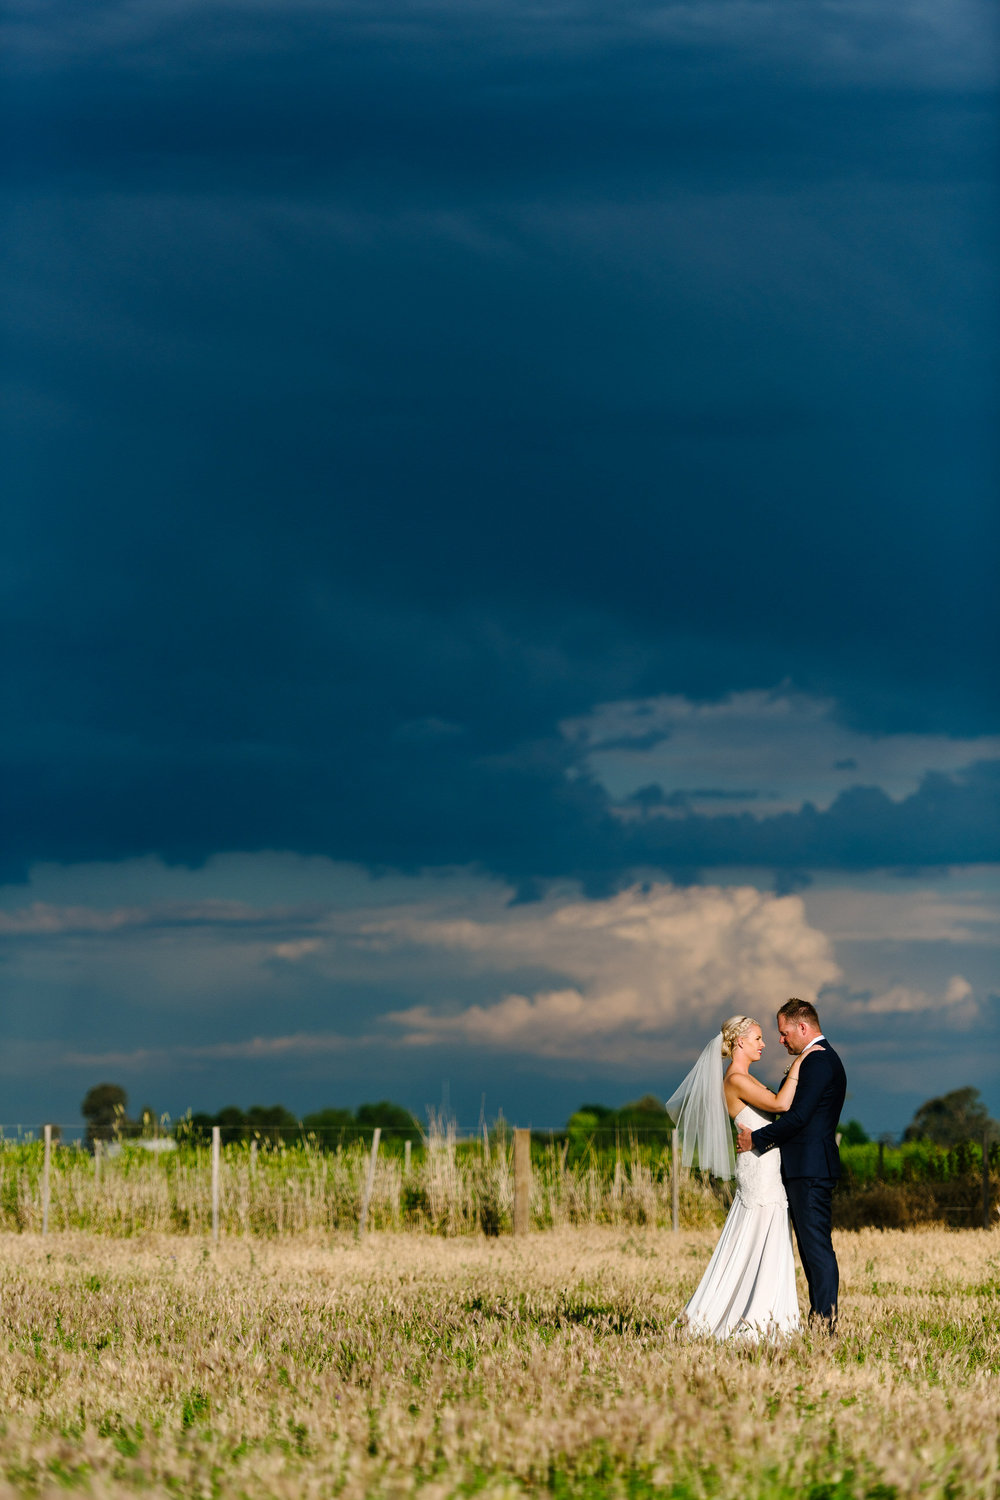 Justin_And_Jim_Photography_Byrchendale_Barn_Wedding74.JPG